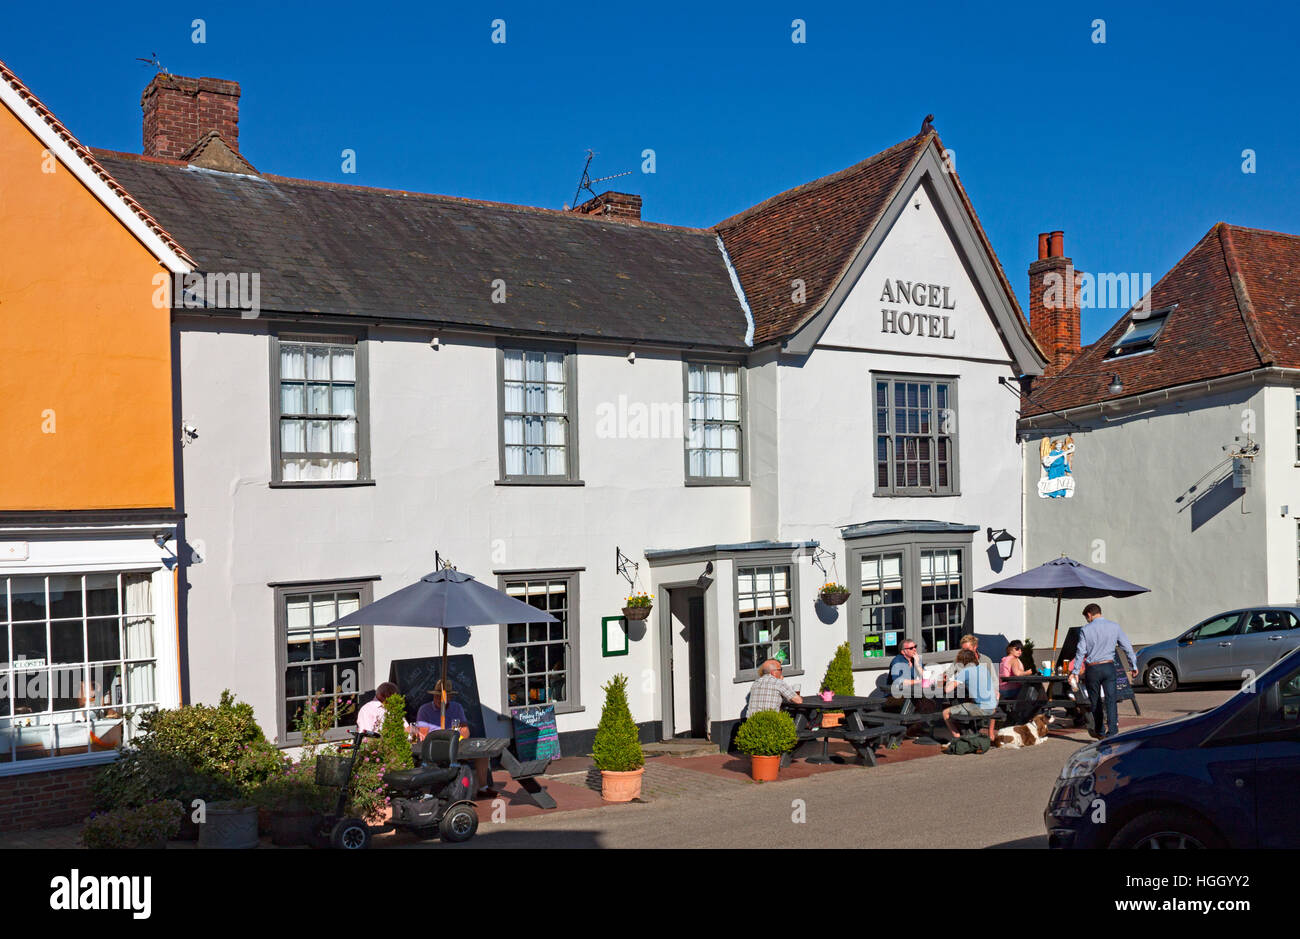 The Angel Hotel in the market square at Lavenham, Suffolk, EnglandStock Photo